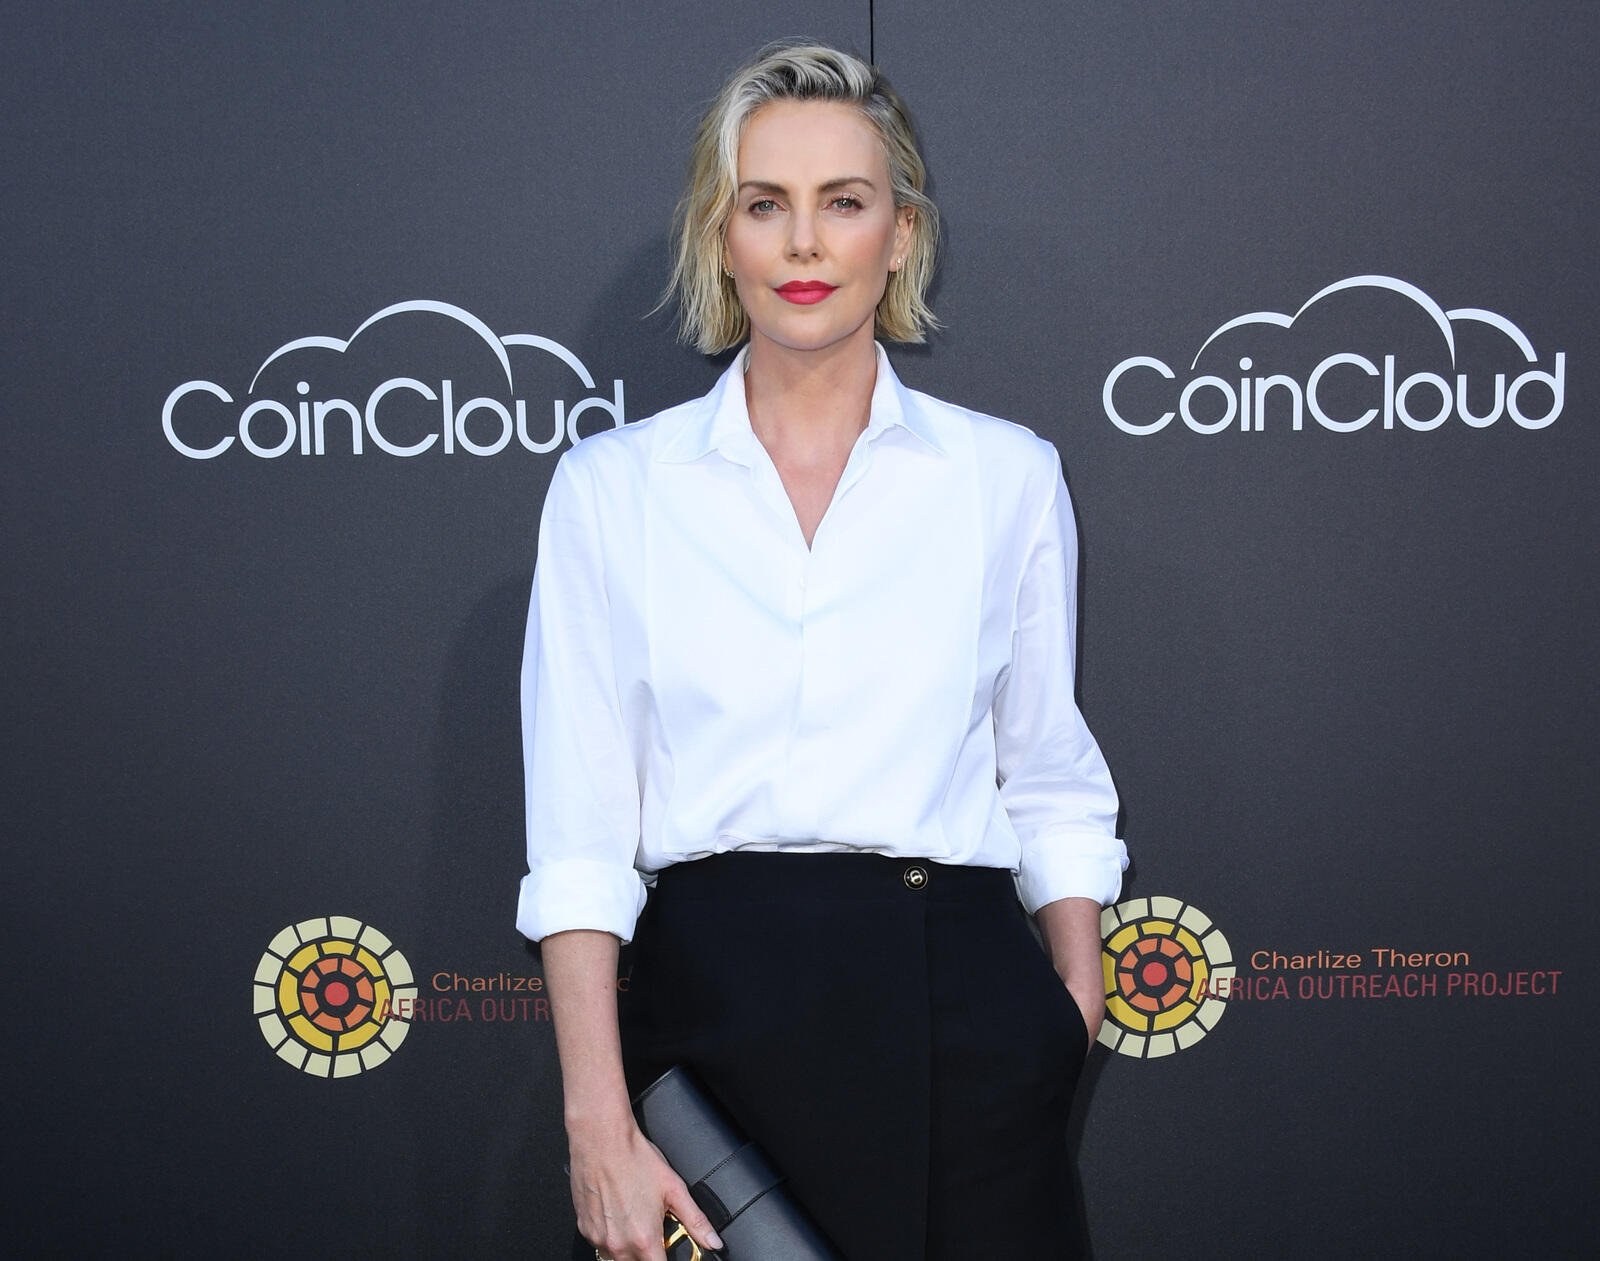 25: 10/08/21 - Charlize Theron Is 'Grateful' For A 'Village Of Strong Black Women' Who Help With Raising Her Daughters: 'They Put Me In My Place'